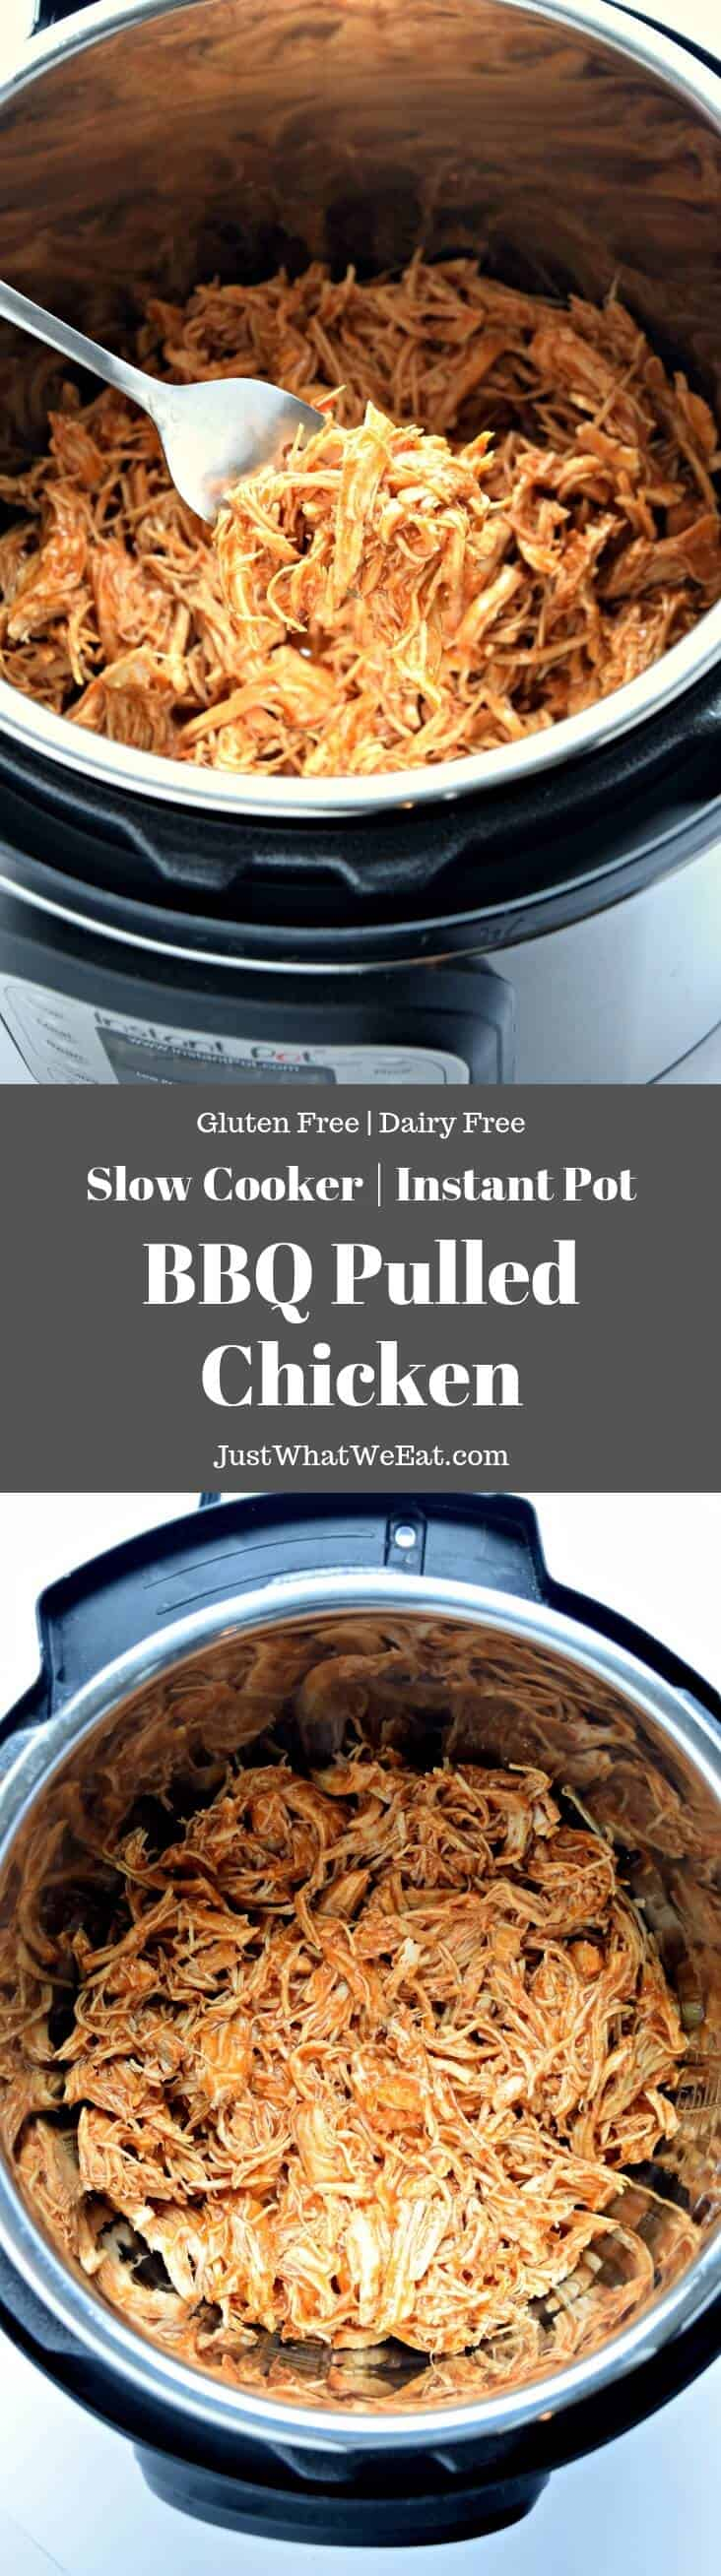 Slow Cooker Instant Pot BBQ Shredded Chicken - Gluten Free & Dairy Free